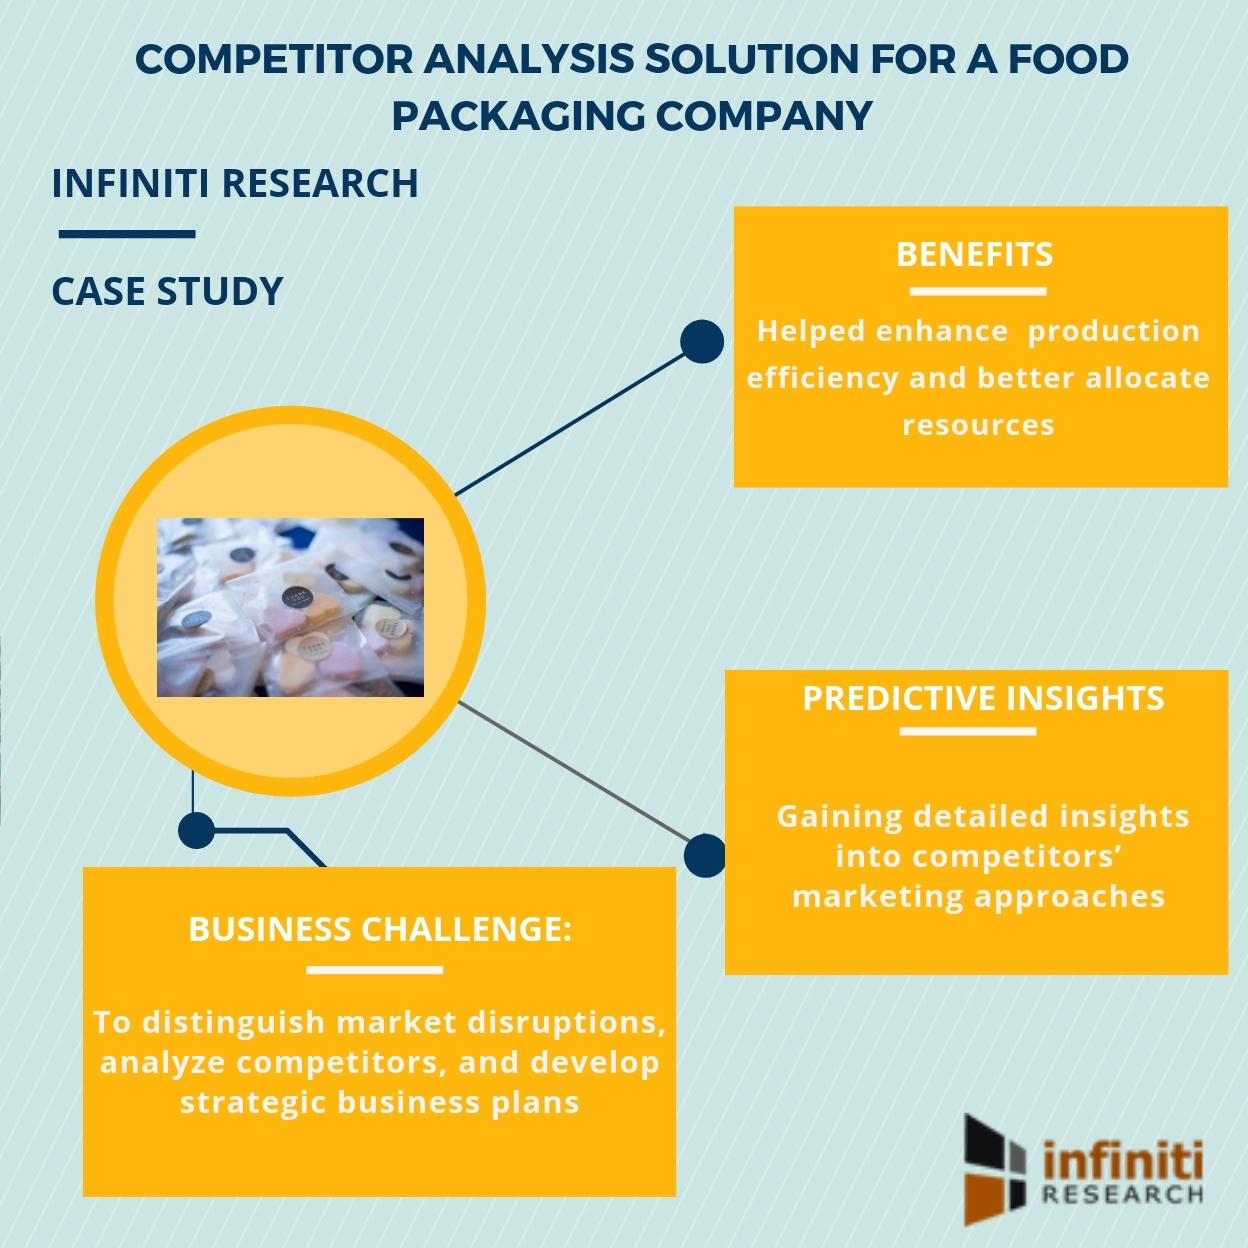 Enhancing Market Share by 37% for a Food Packaging Company